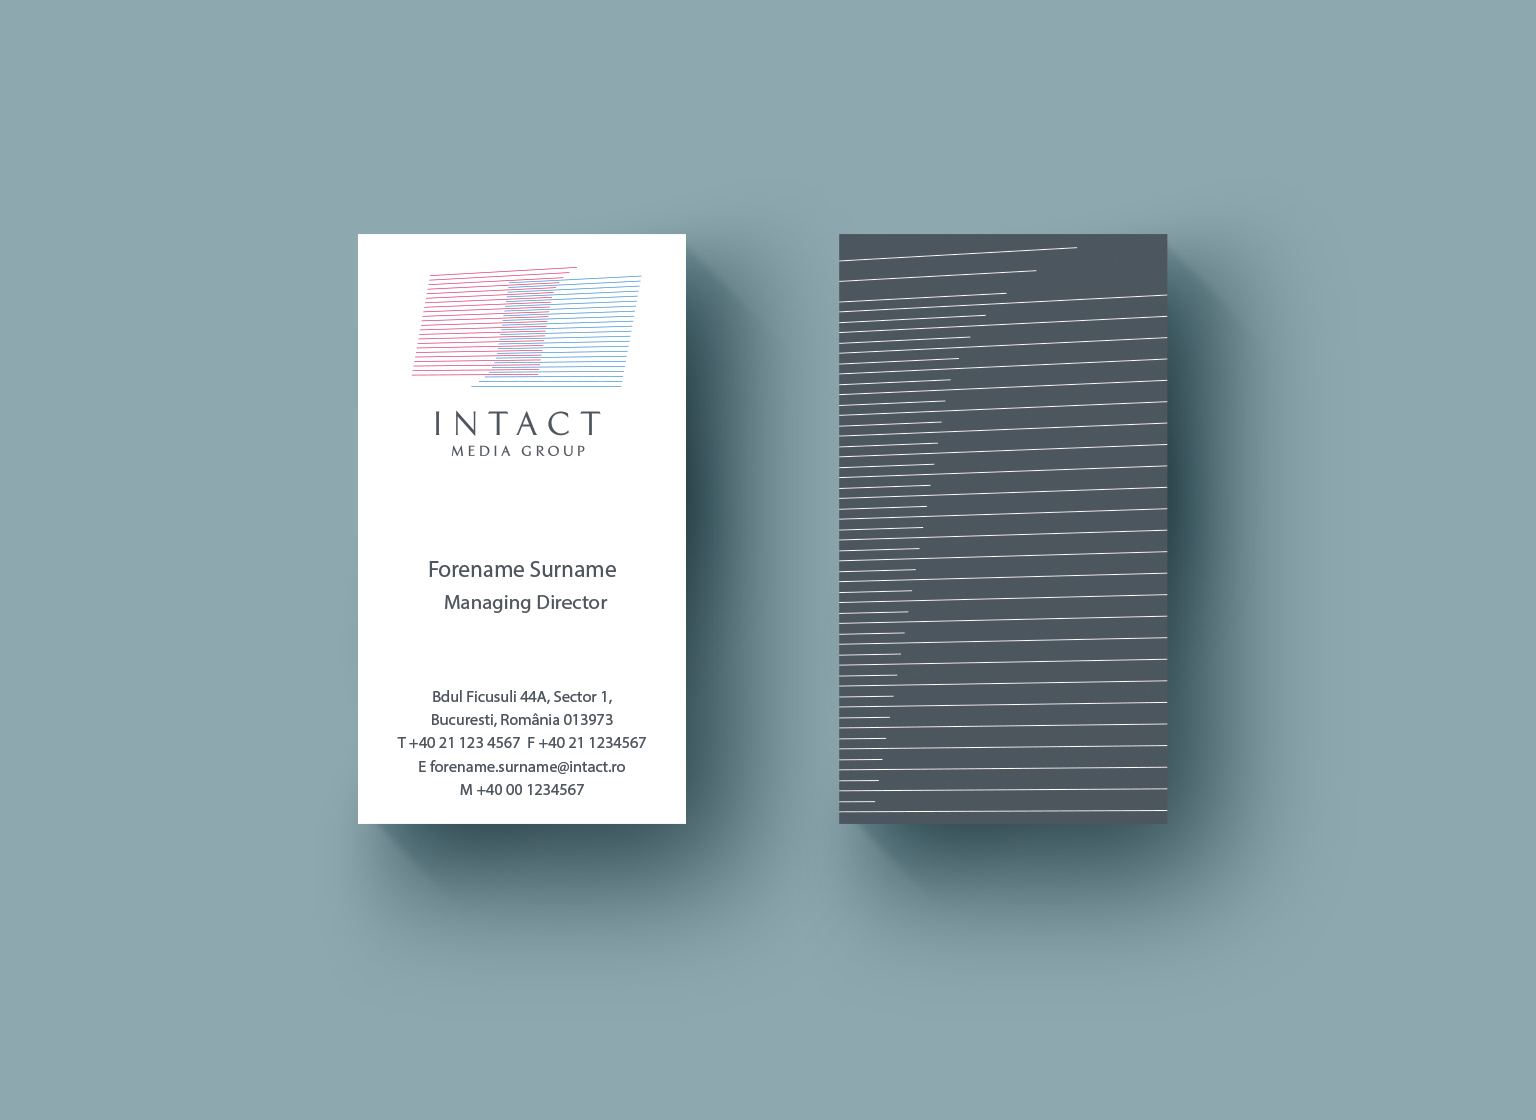 Intact Media Group portfolio inoveo business card